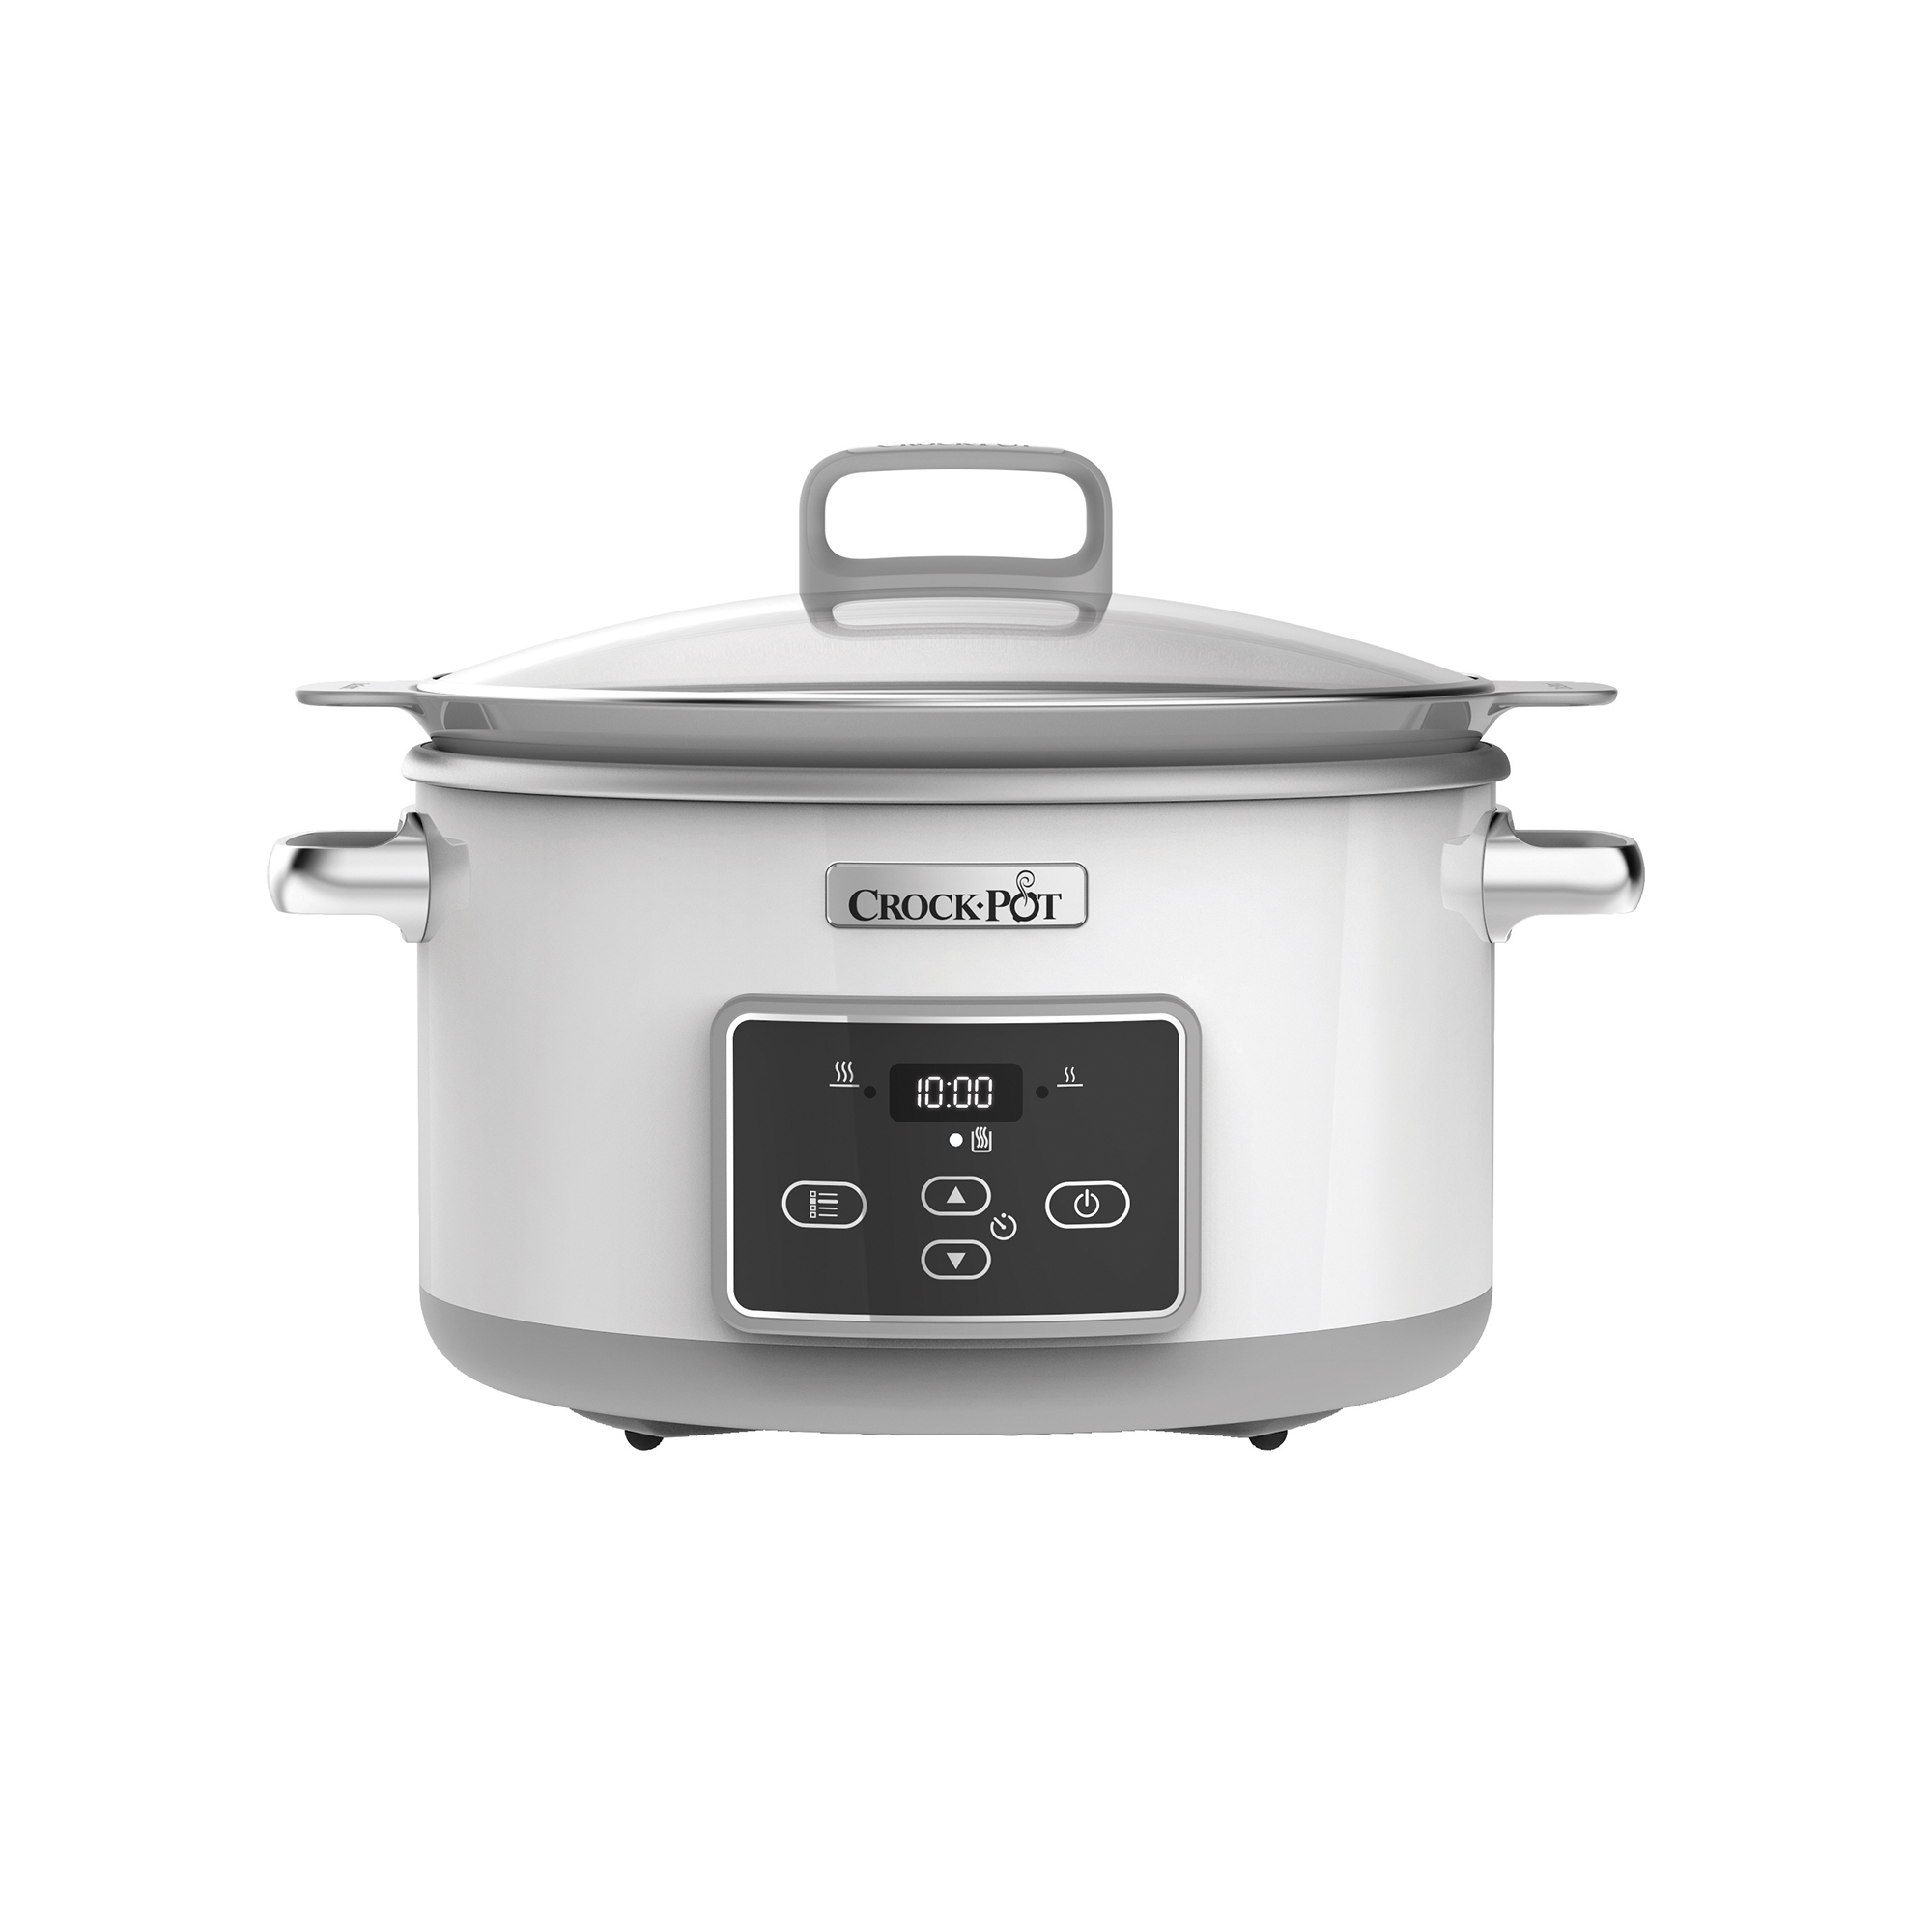 Slowcooker 5,0 L – One Pot Cooking, DC, timer